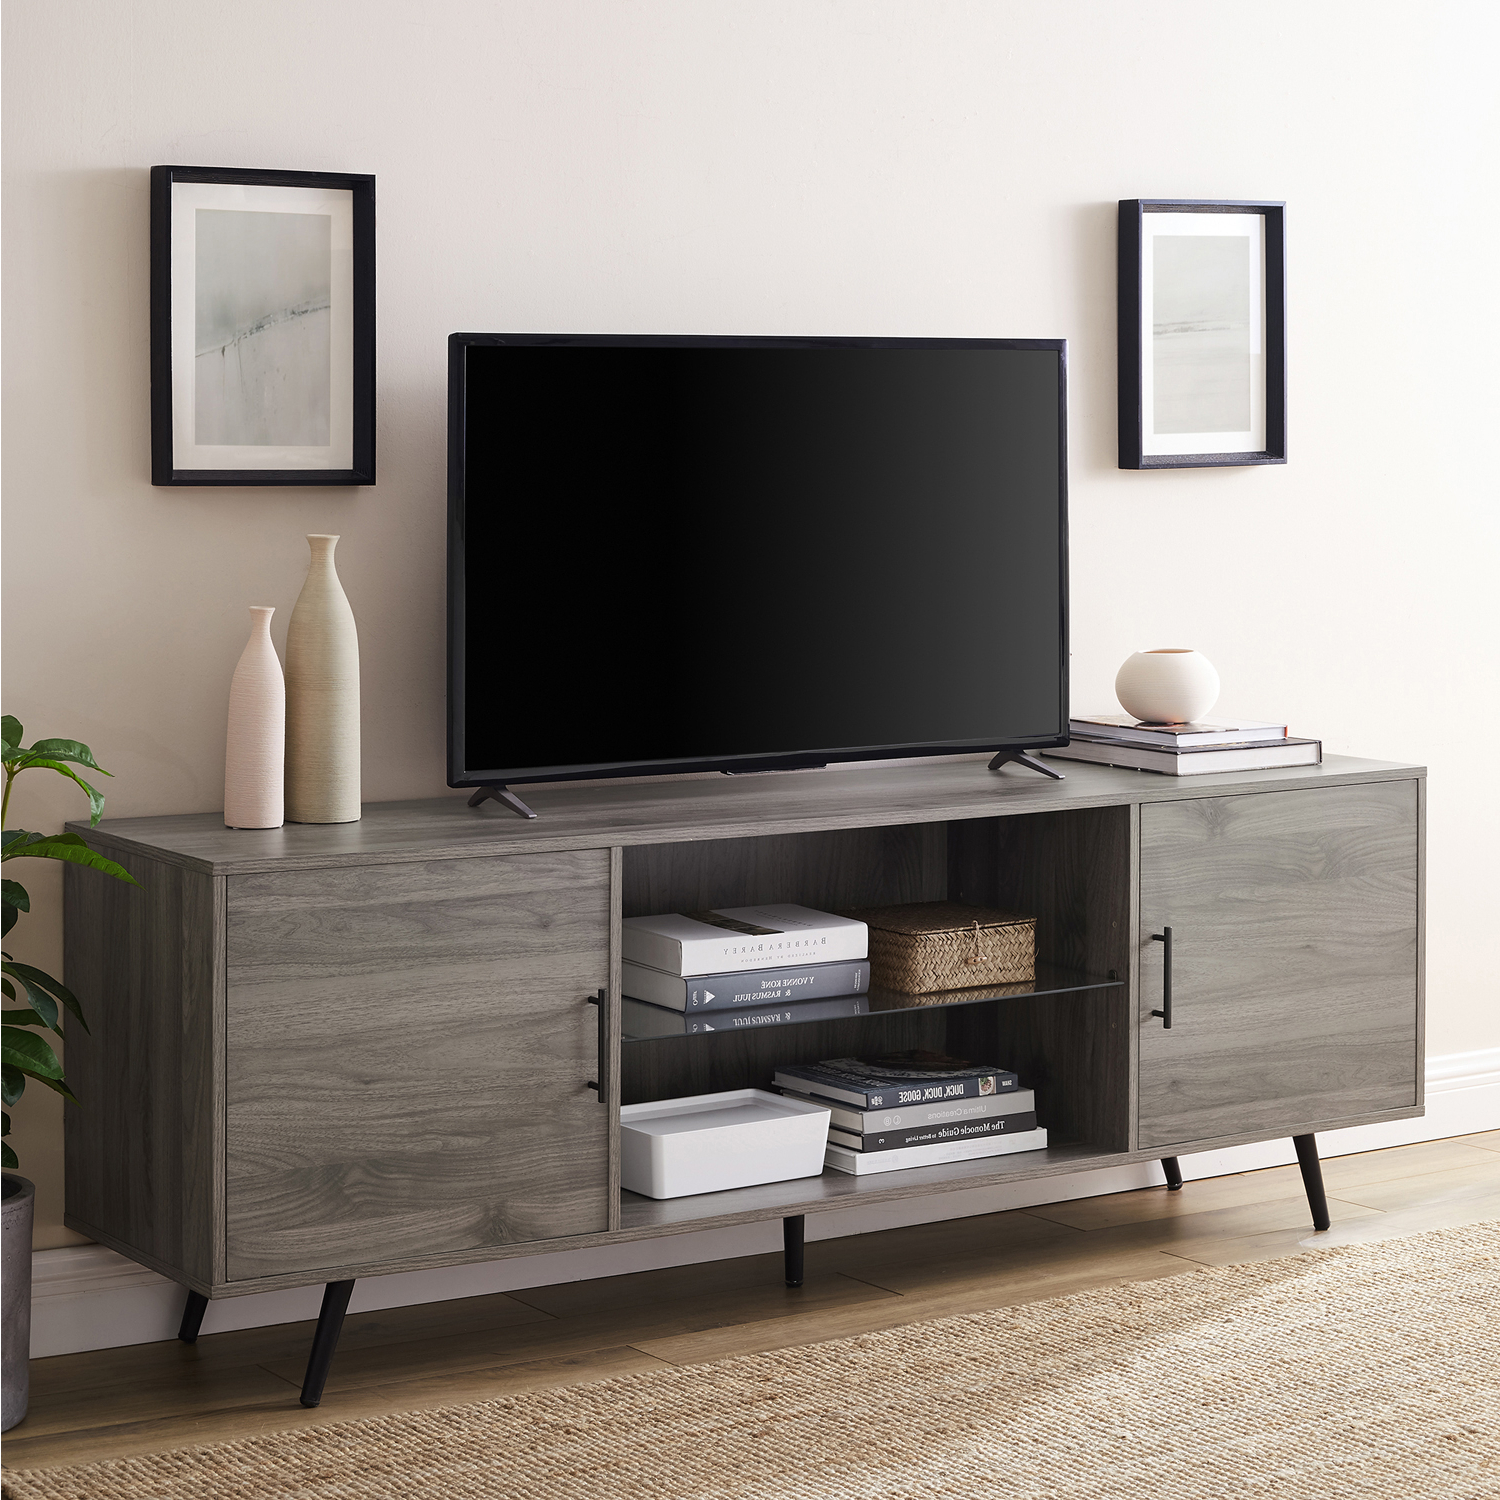 Wide Tv Stand With Glass Shelf – Pier1 In Copen Wide Tv Stands (View 4 of 20)